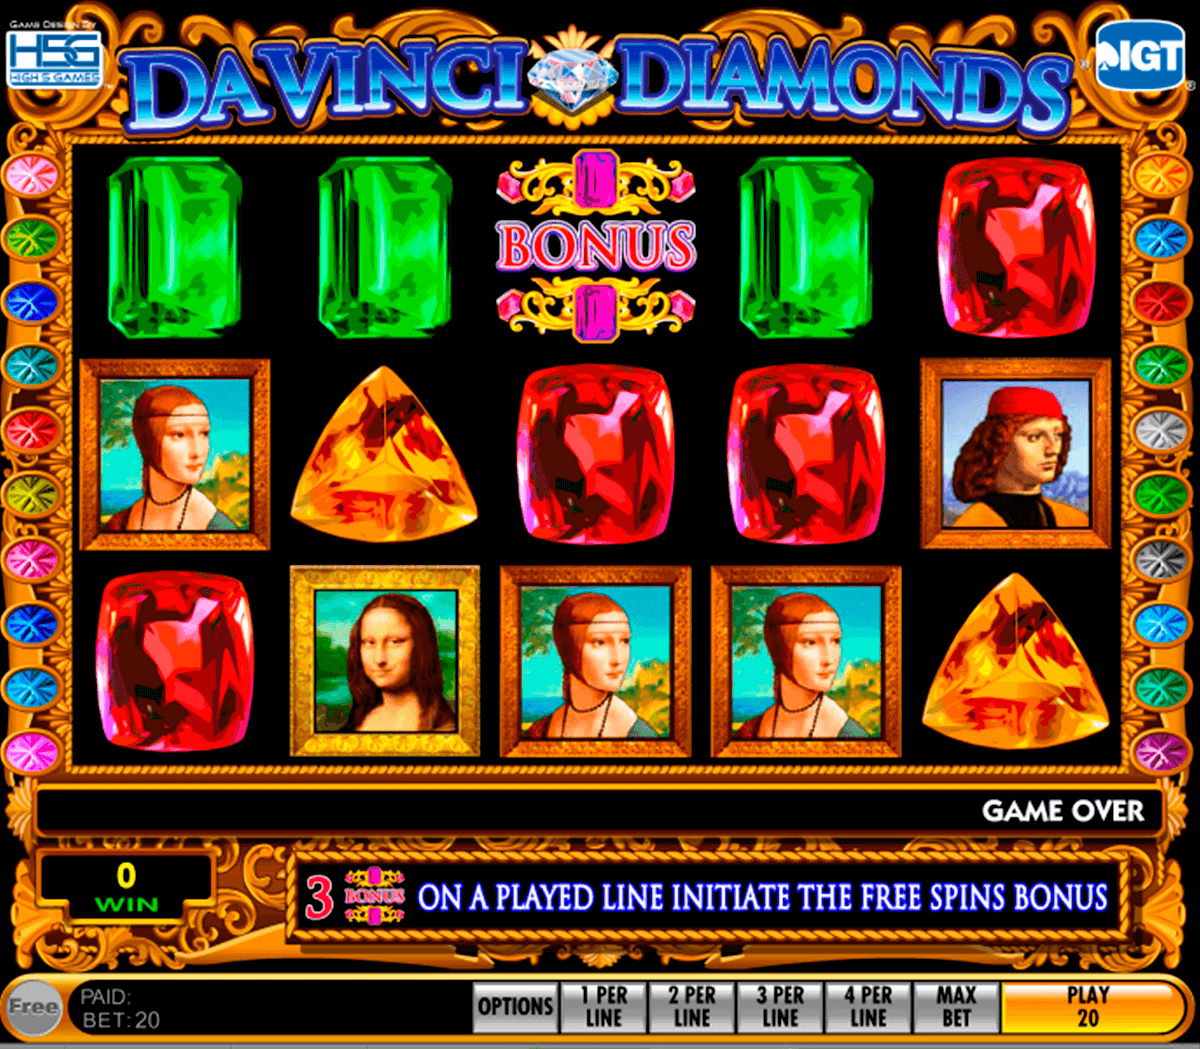 da vinci diamonds igt